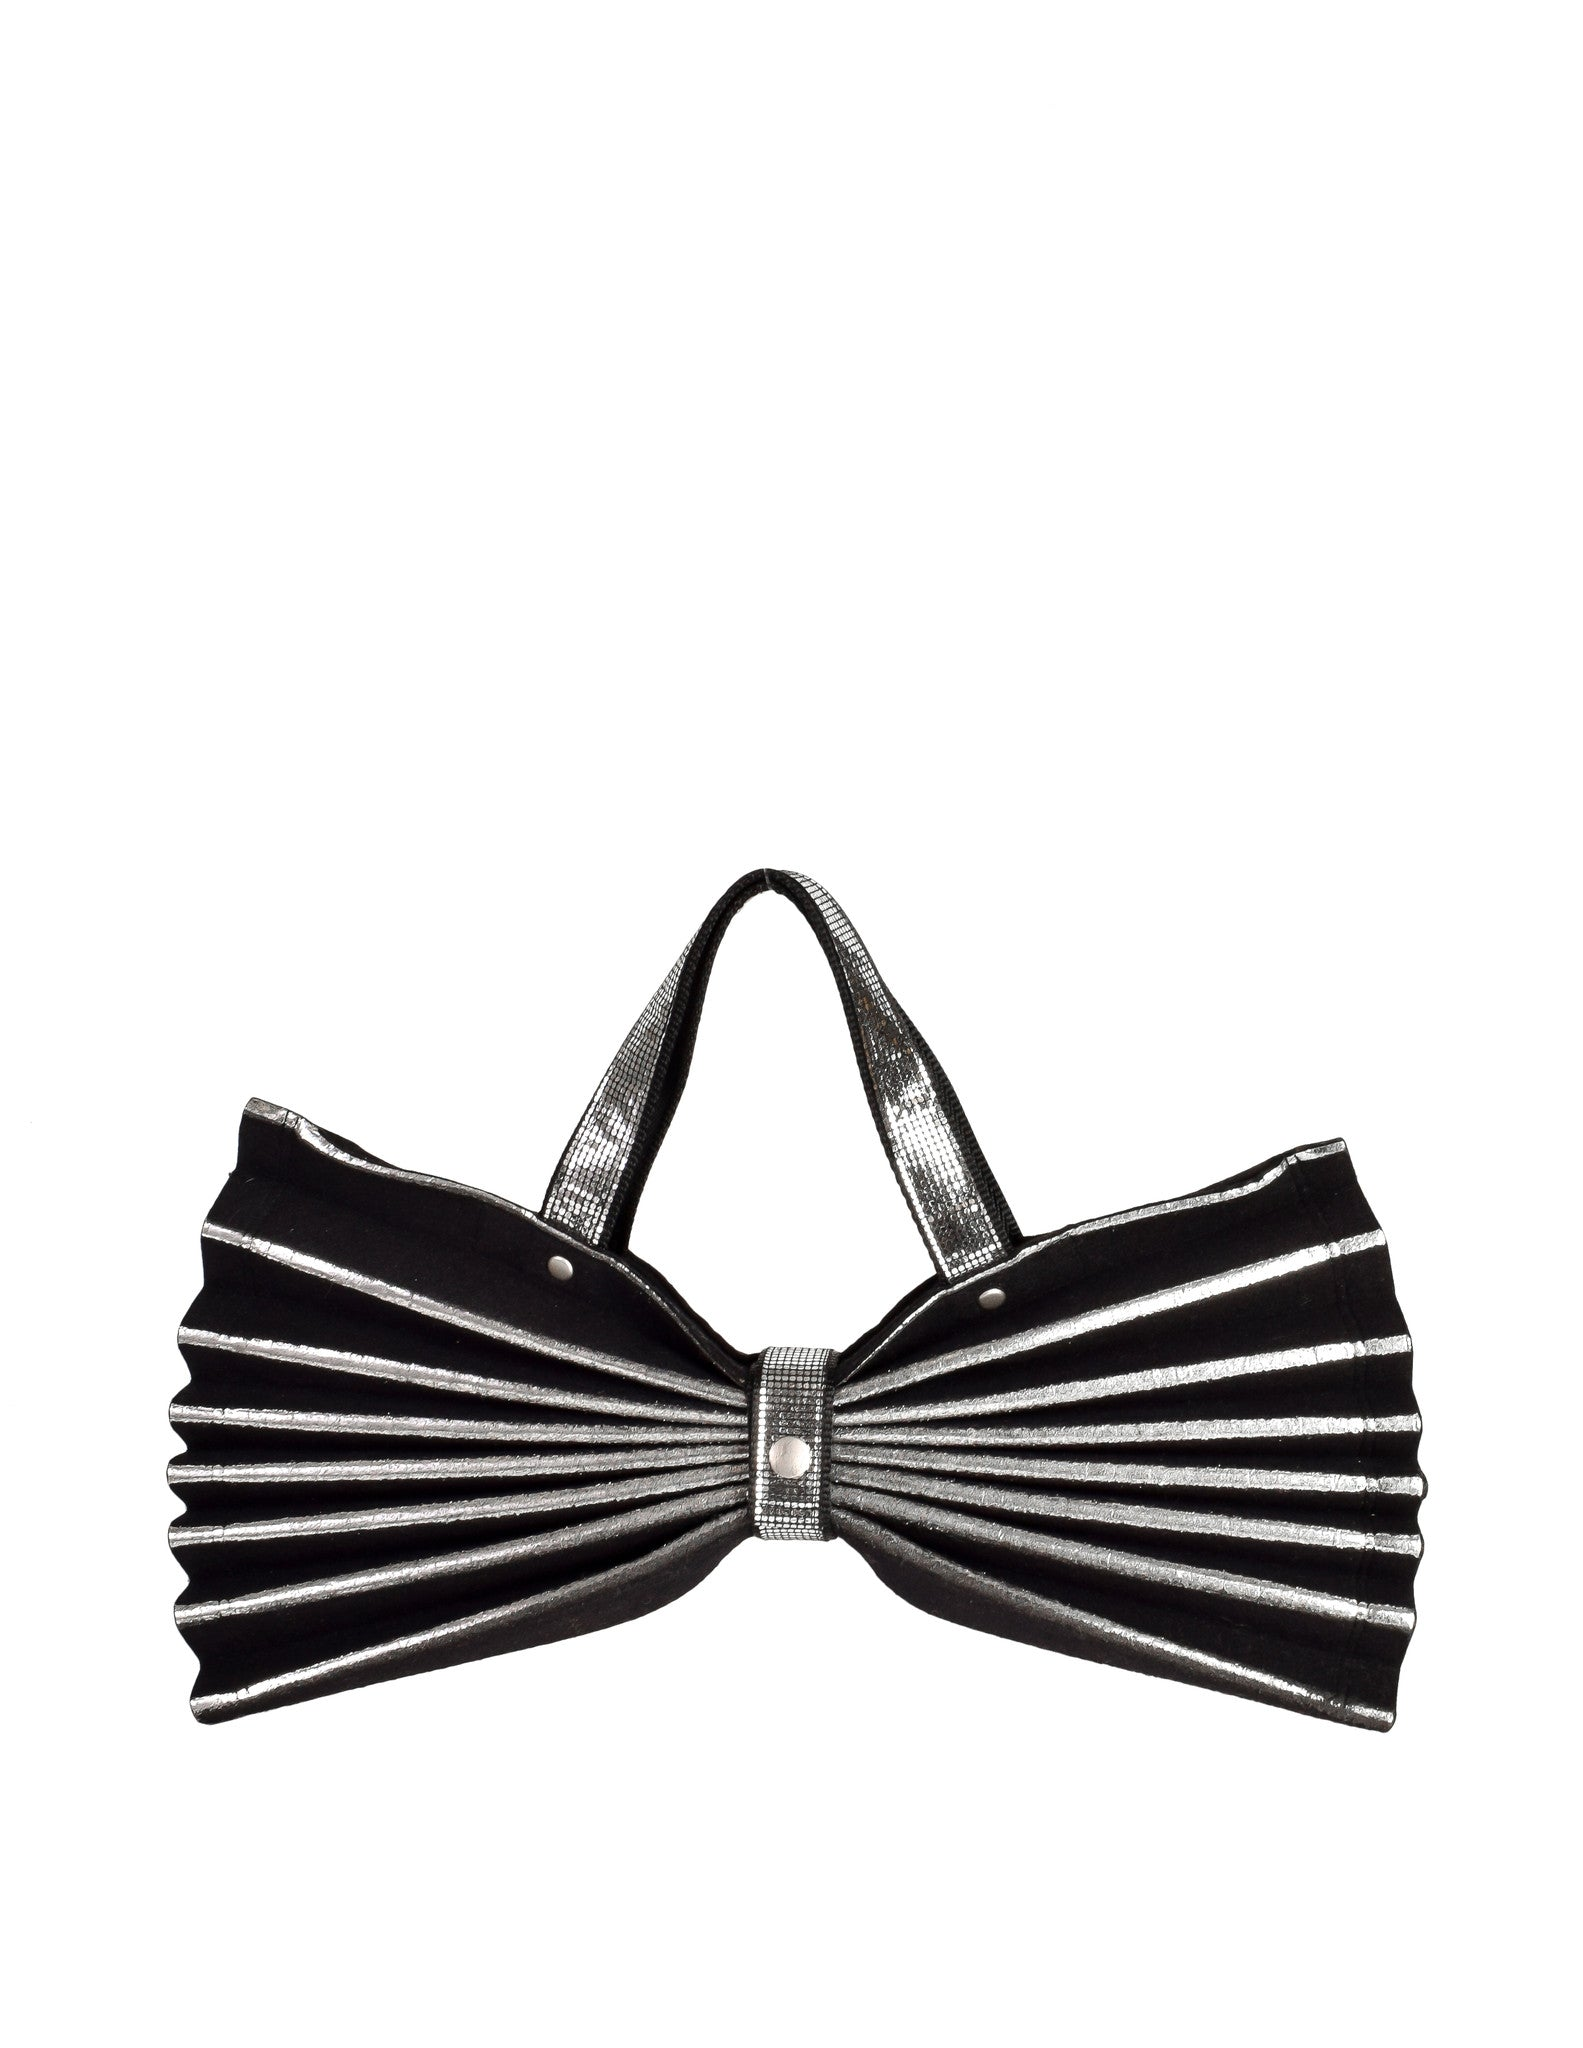 Issey Miyake Vintage Black & Silver Felt Accordion Pleated Bag - Amarcord Vintage Fashion  - 1